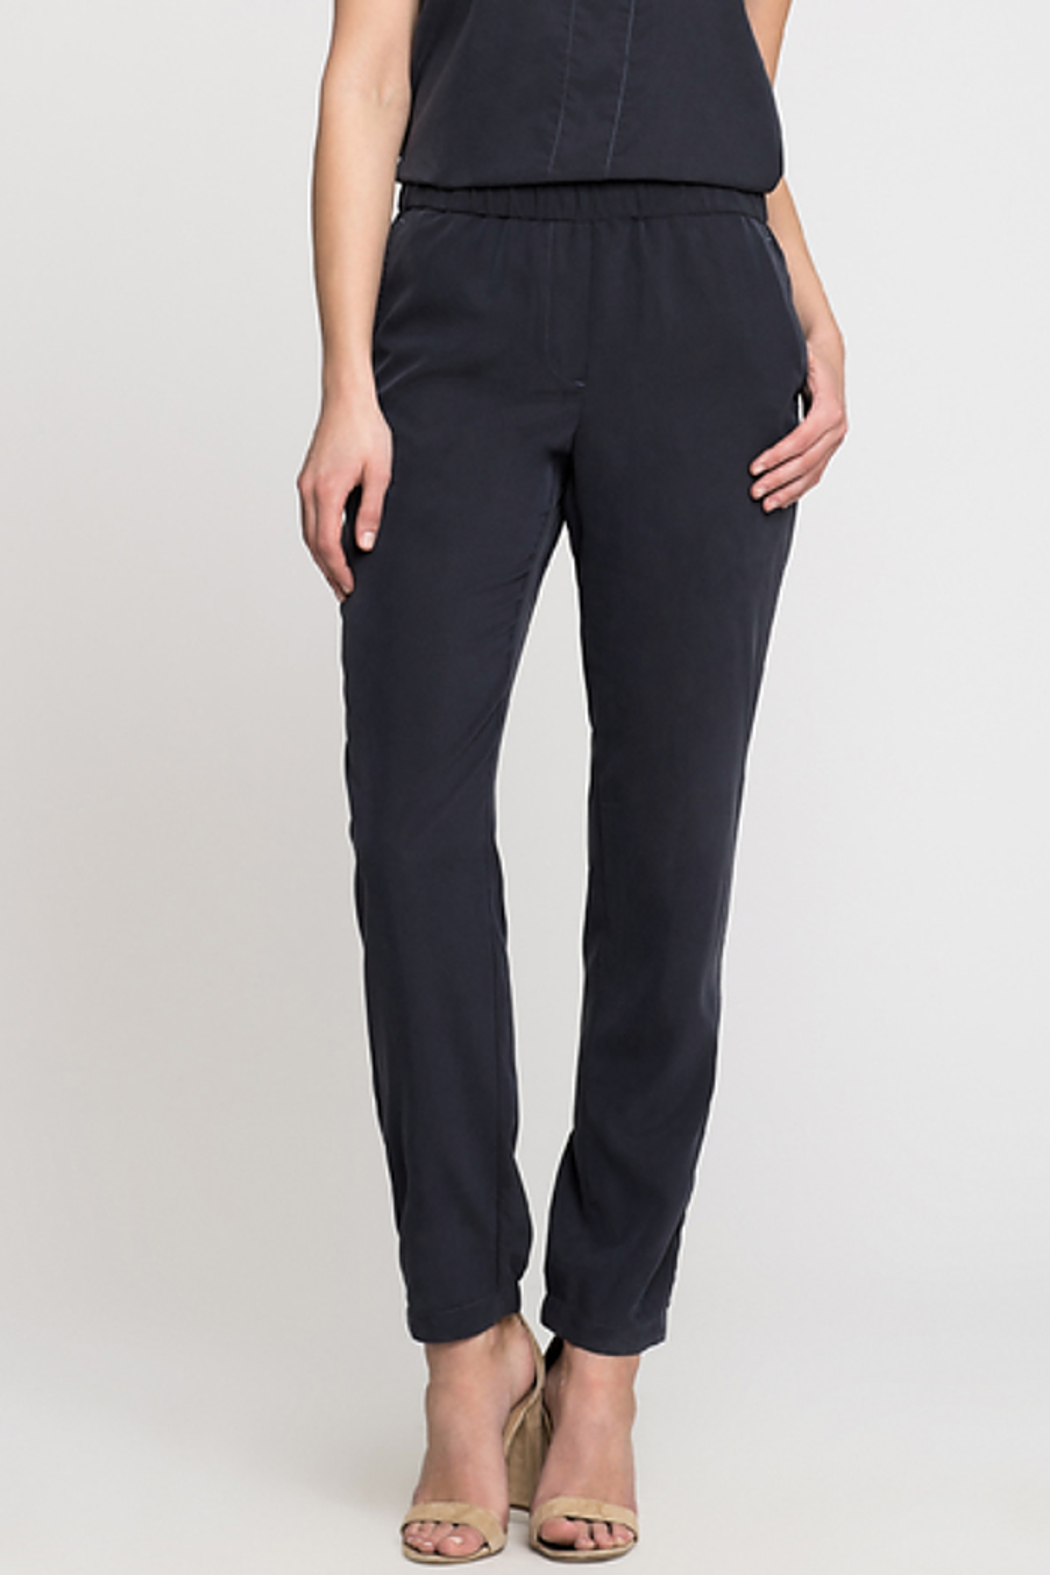 Nic + Zoe City Slicker Pant - Main Image